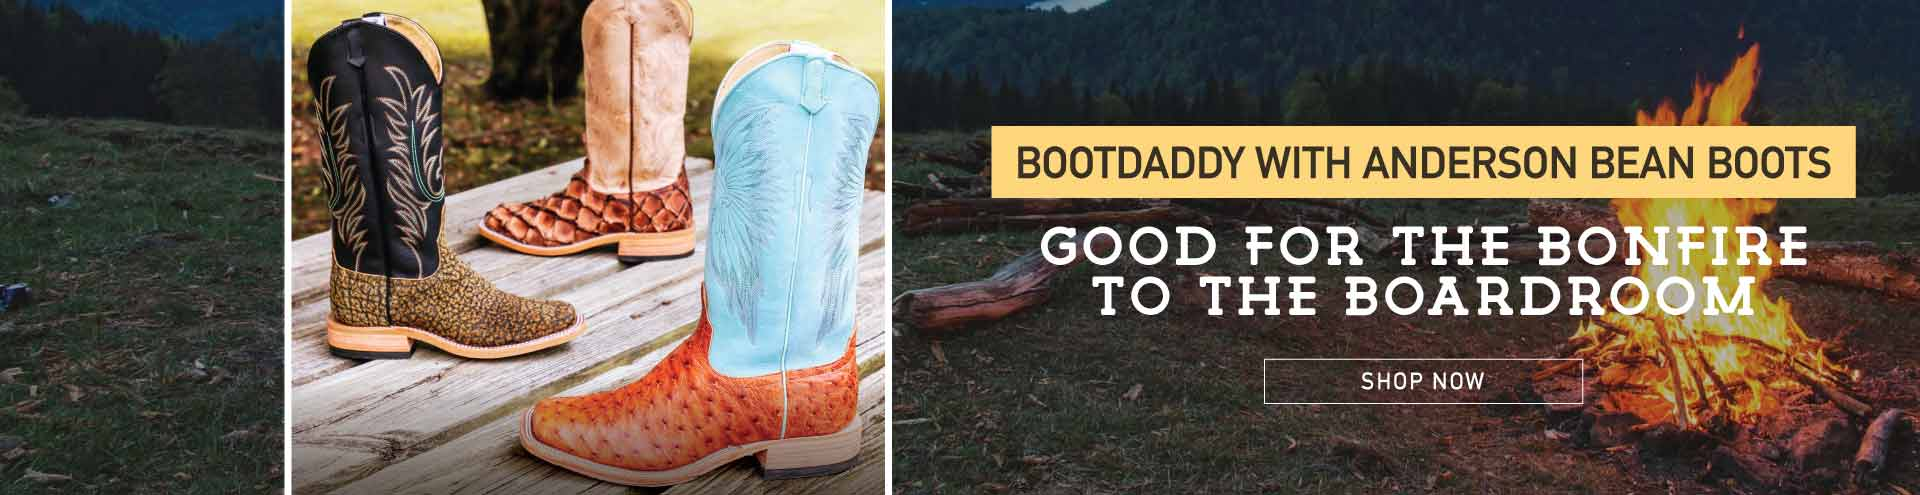 bootdaddy anderson bean boots